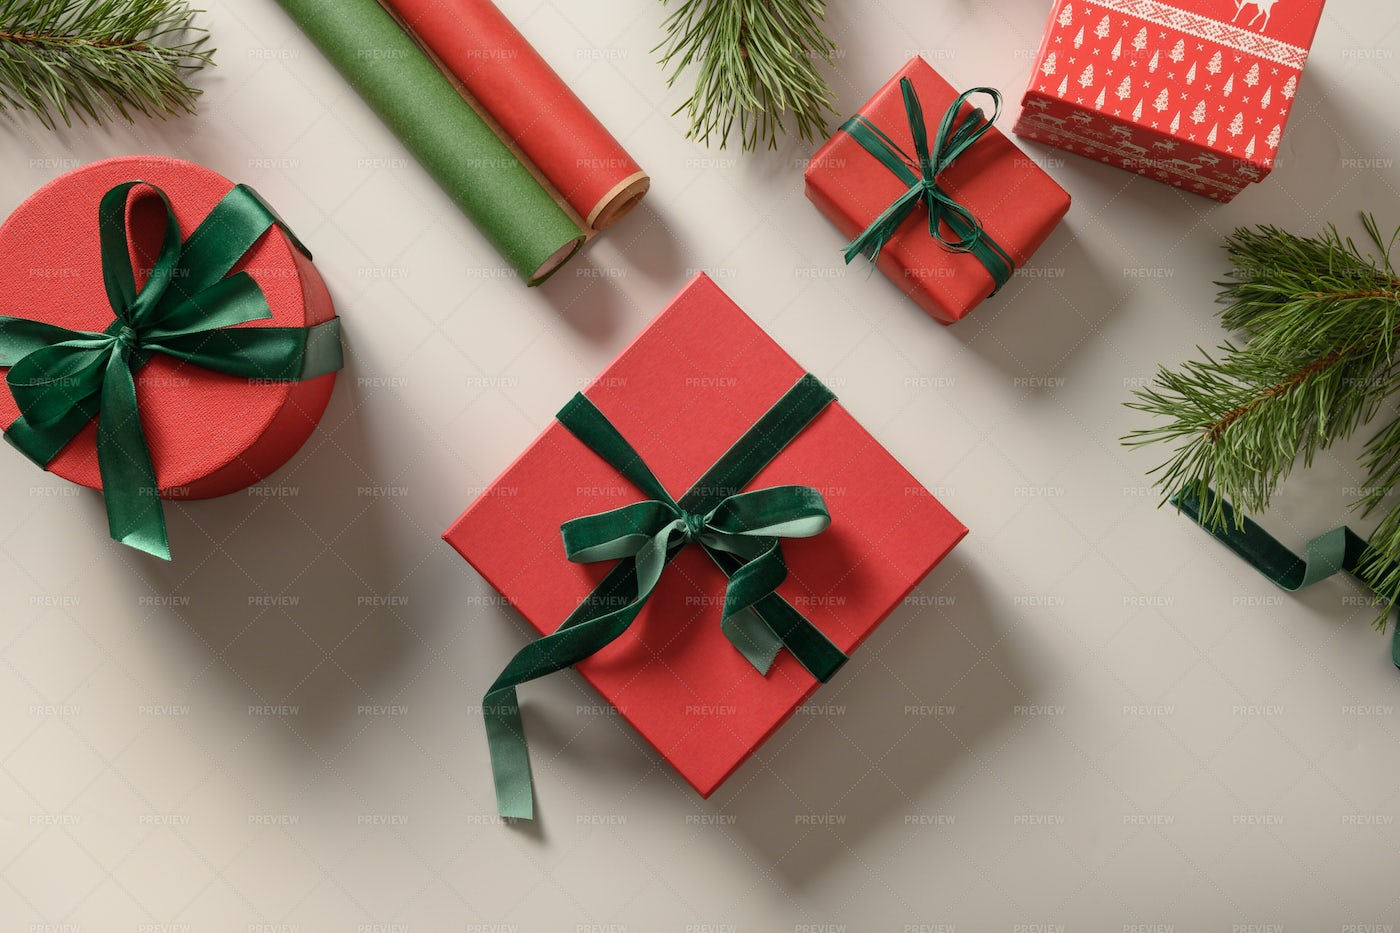 Christmas Red And Green Gifts: Stock Photos